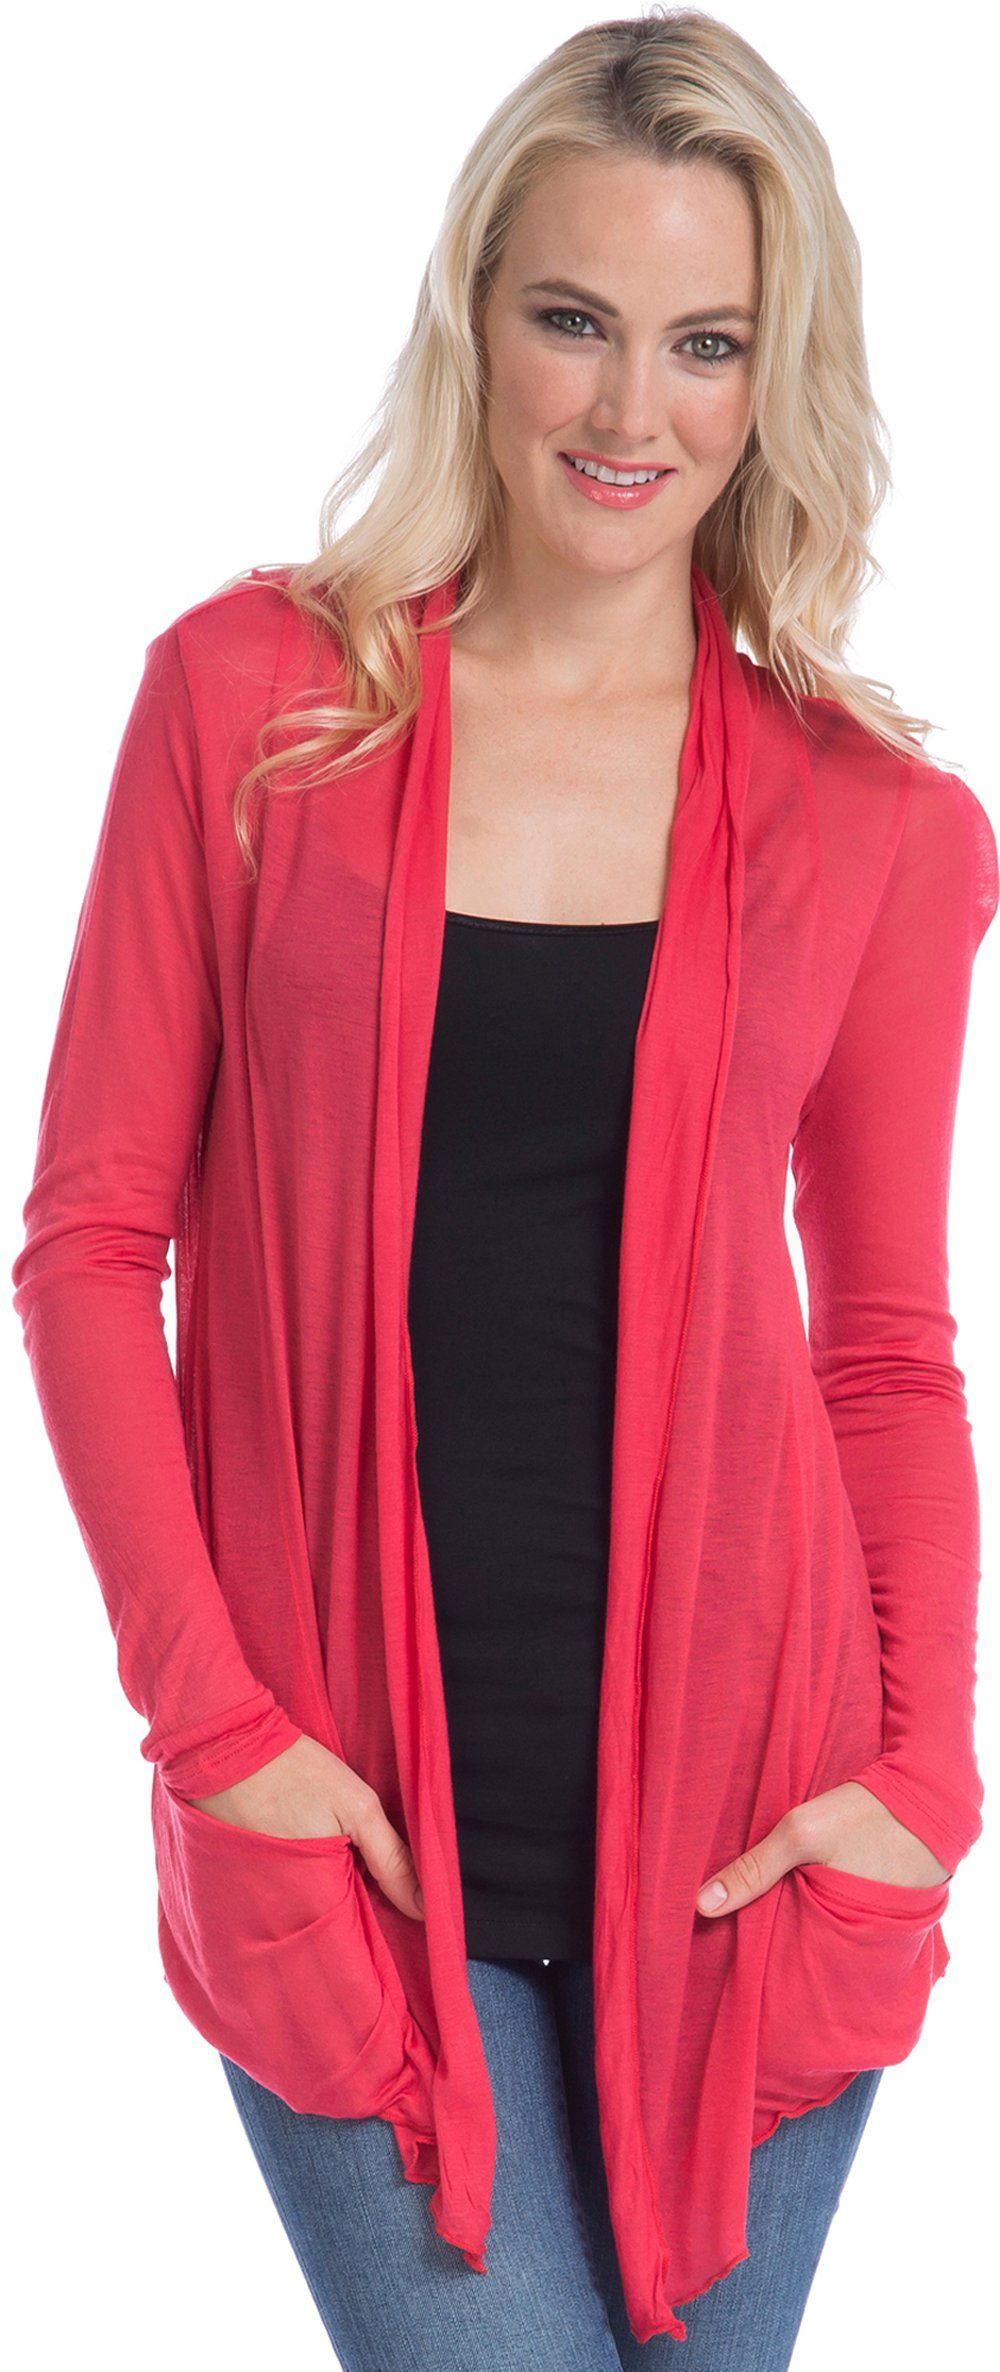 Semi-sheer Cardigan Cover-up with Pockets, 3X, Torch-Red | My ...